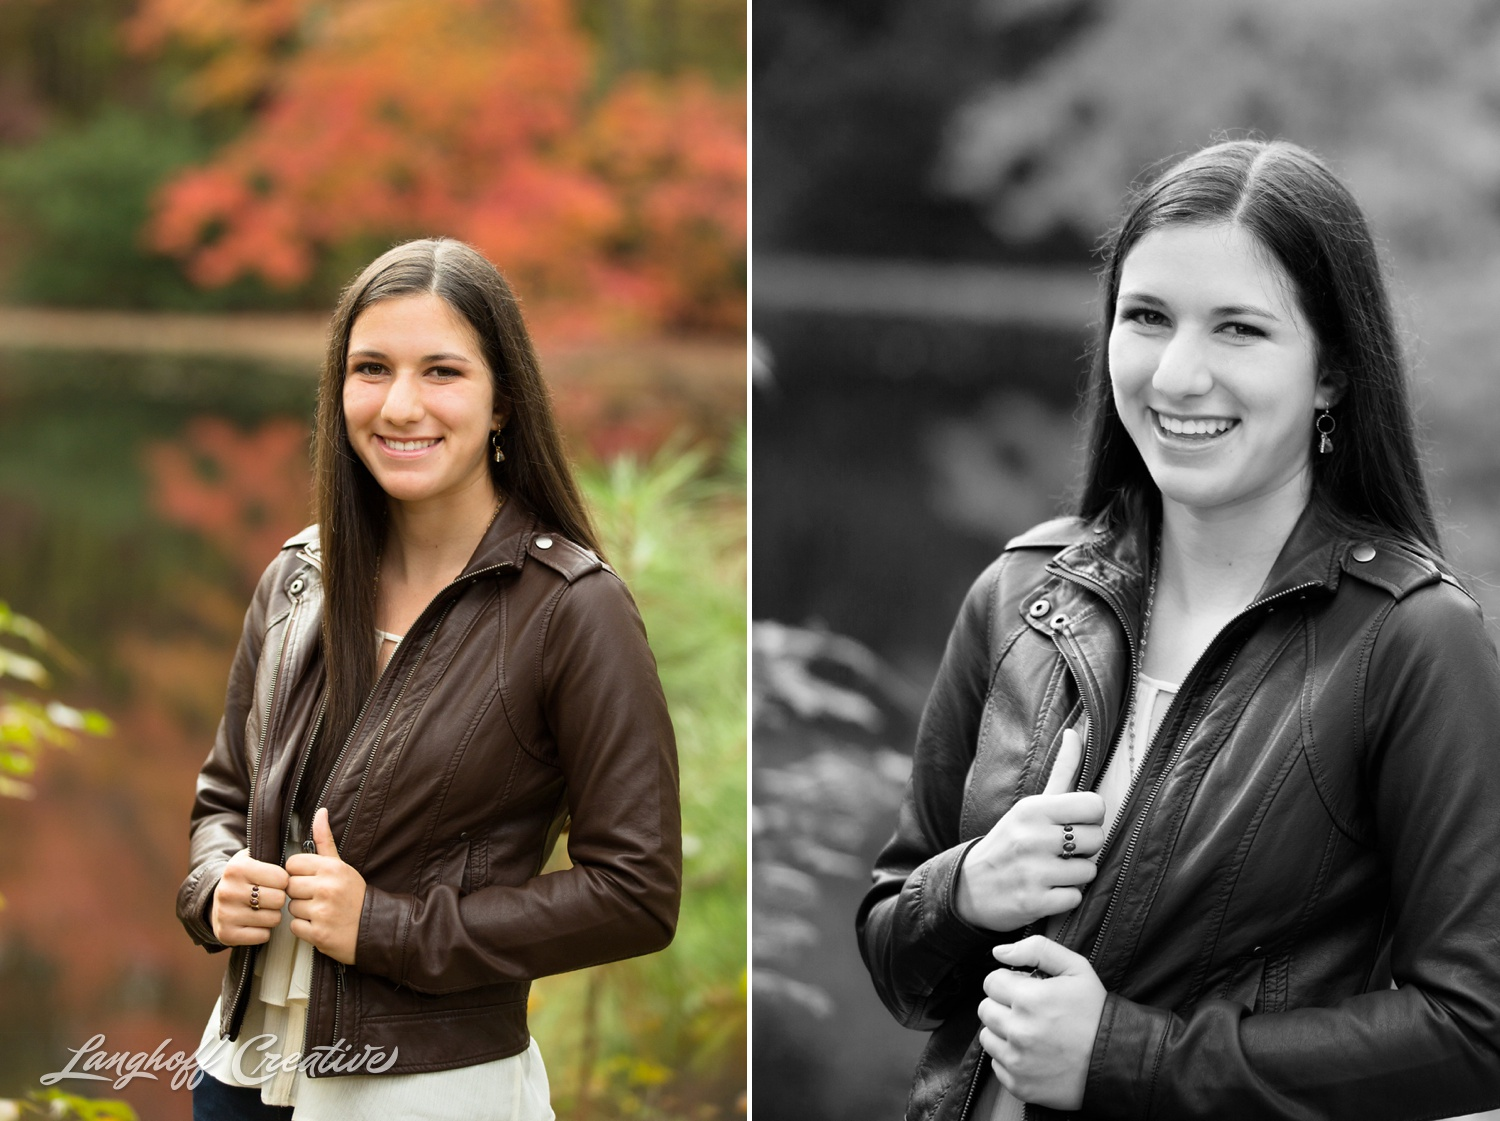 RaleighSeniorPortraits-SeniorSession-Classof2015-Senior2015-HighSchoolSeniorPhotography-LanghoffCreative-Alexa4-photo.jpg